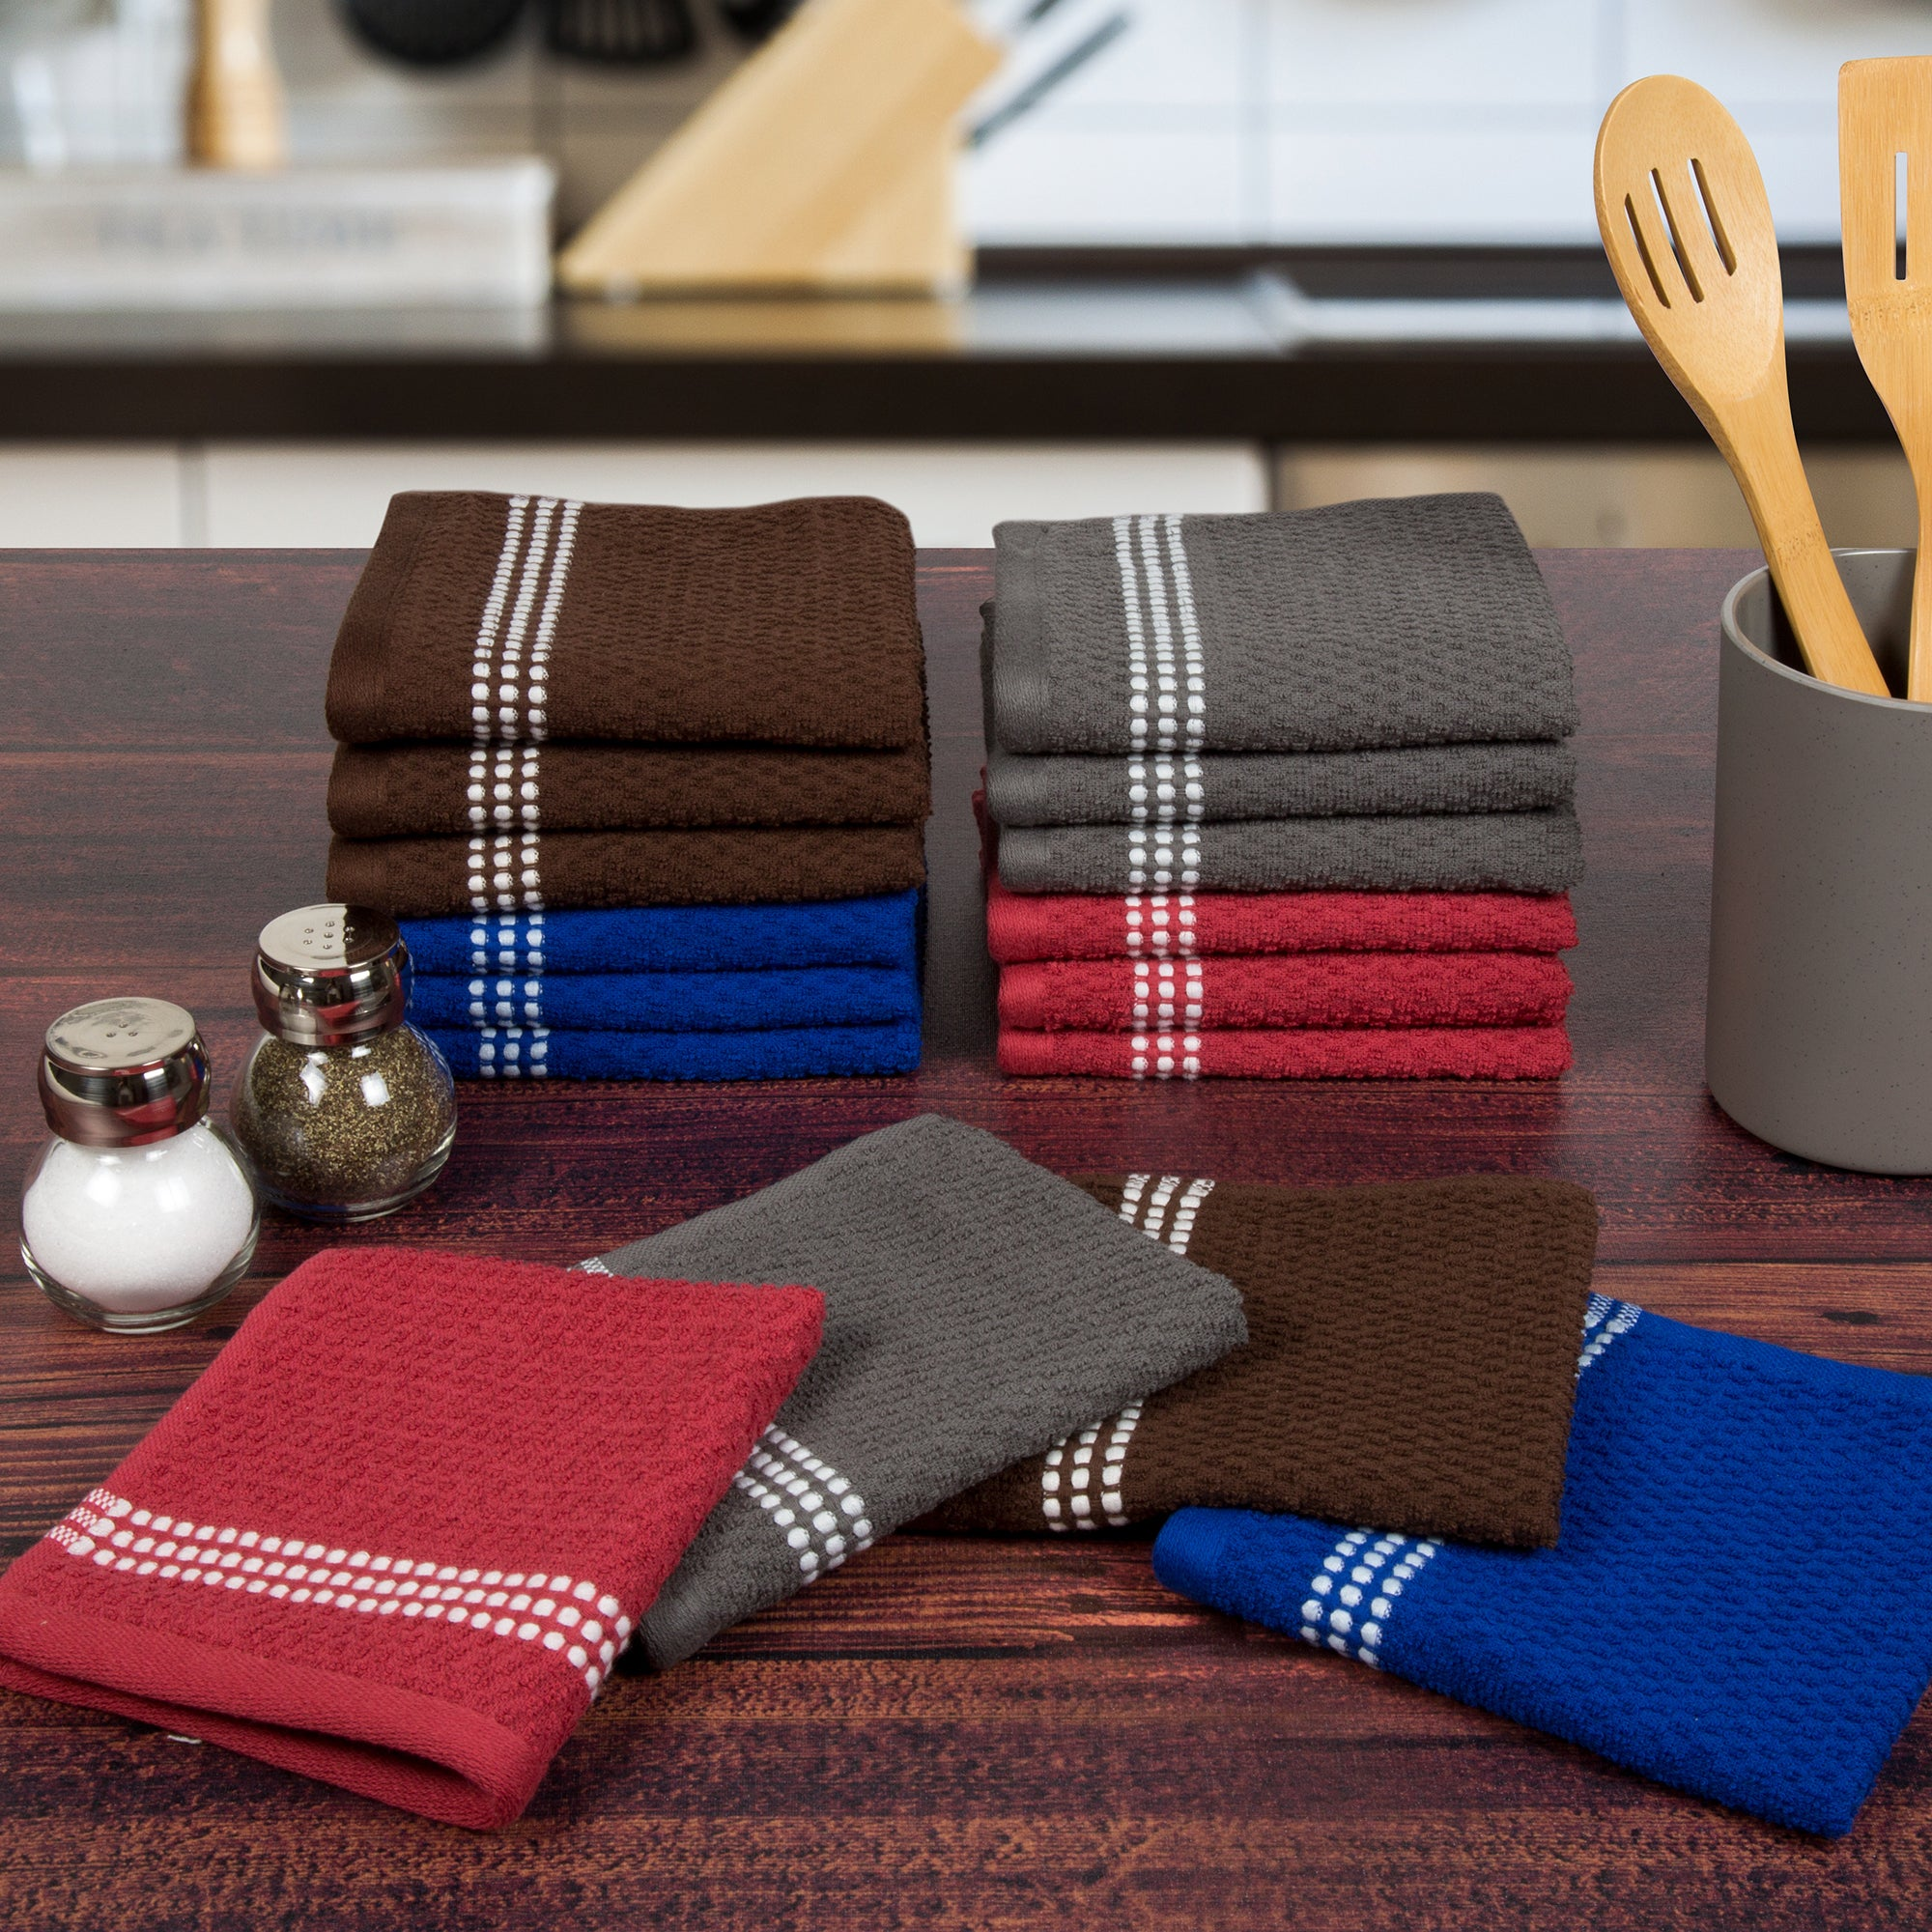 Windsor Home 16-piece Cotton Terry Kitchen Towel Wash Clo...